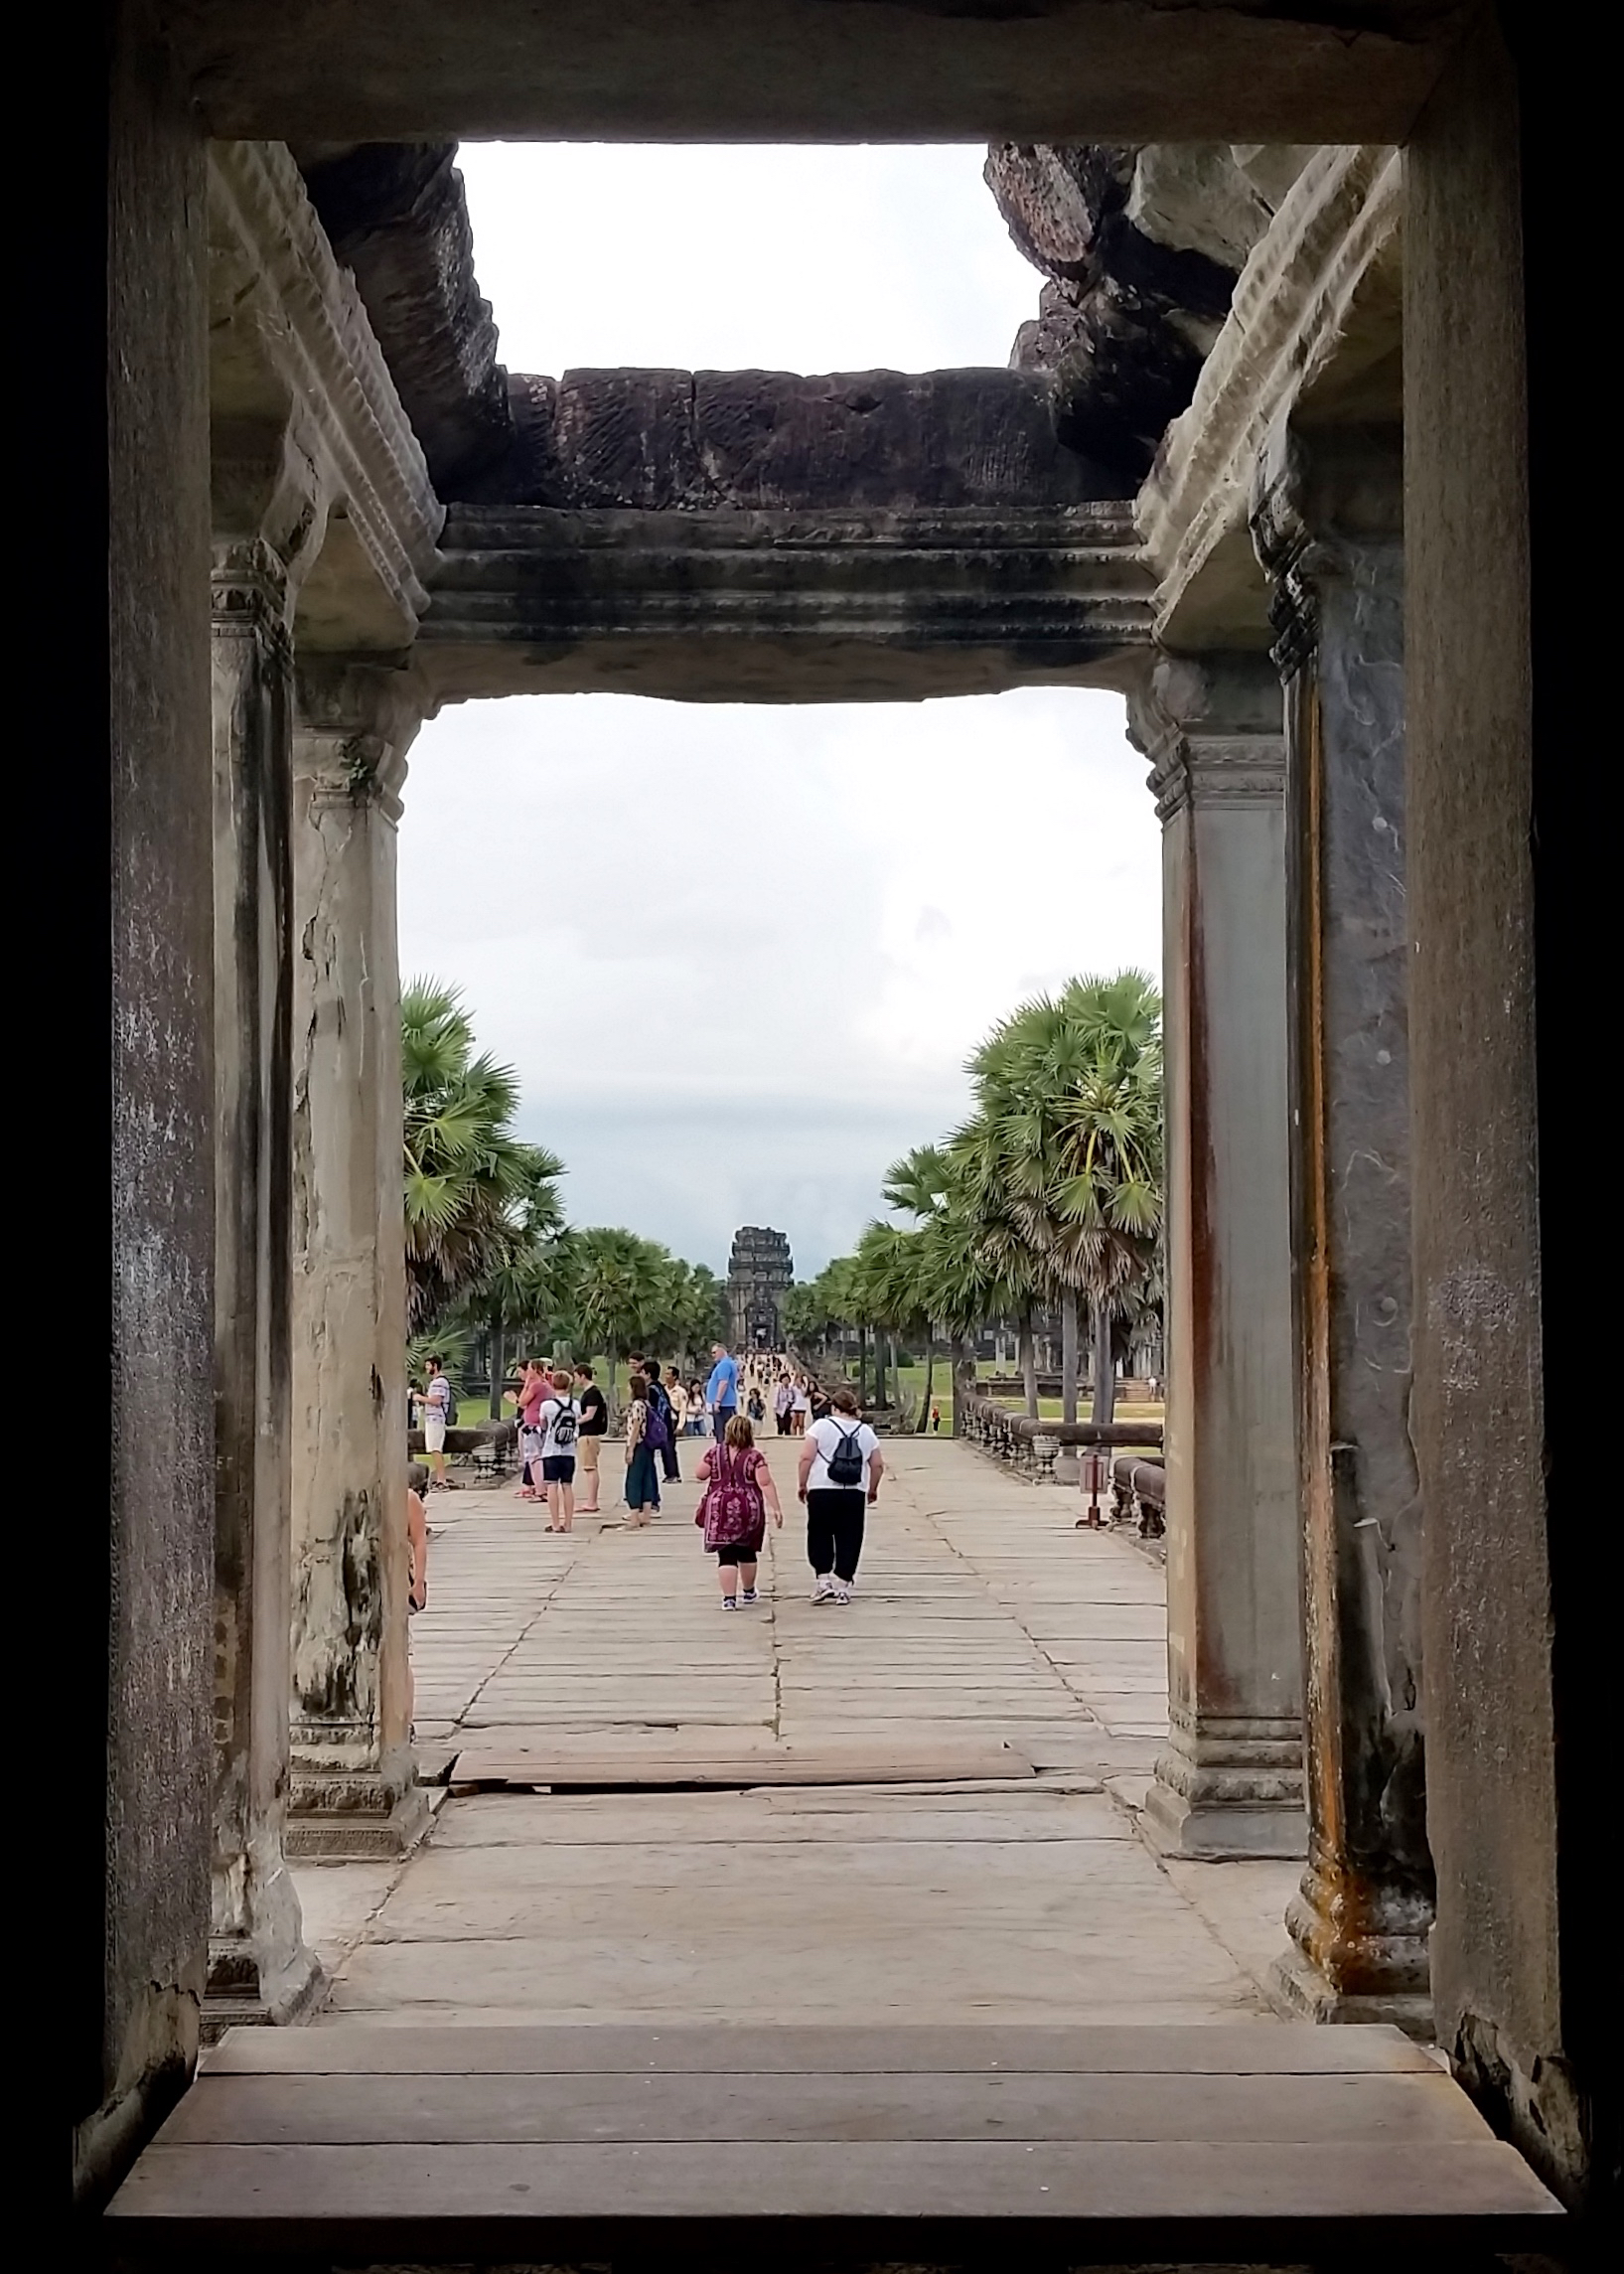 Fellow tourists make their way out of the enormous Angkor Wat temple in Siem Reap, tired from climbing many stairs and admiring many embossed pictures.